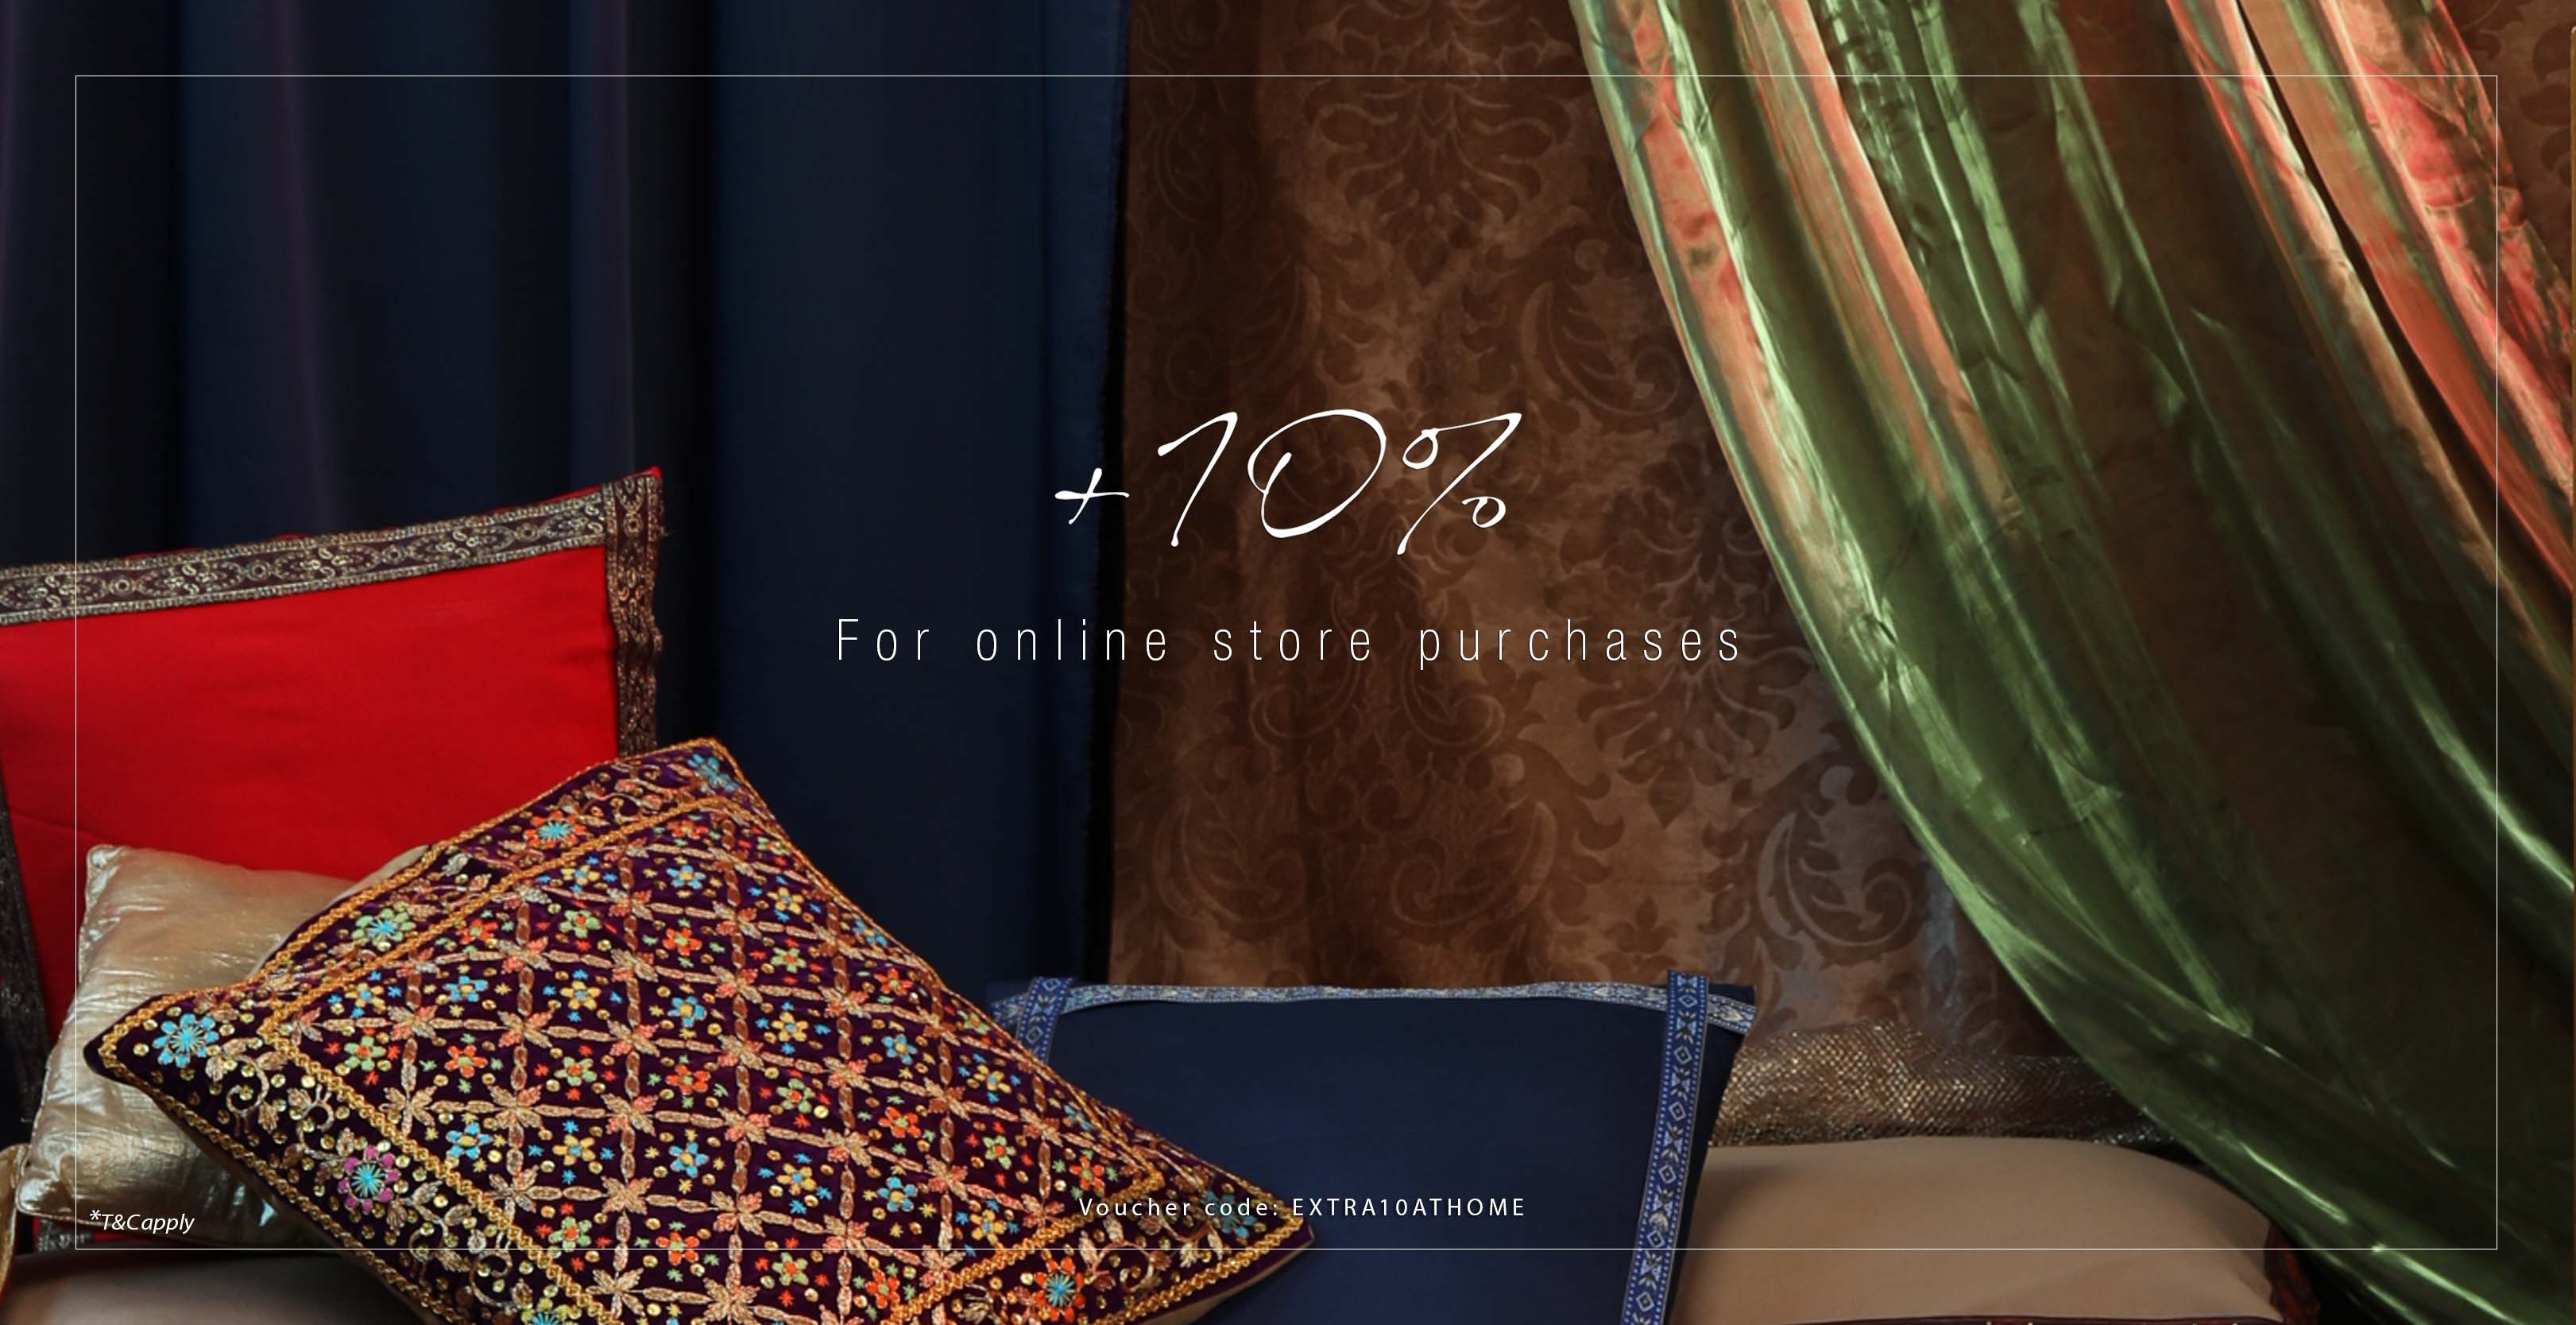 Extra 10% OFF - Online store pruchase only